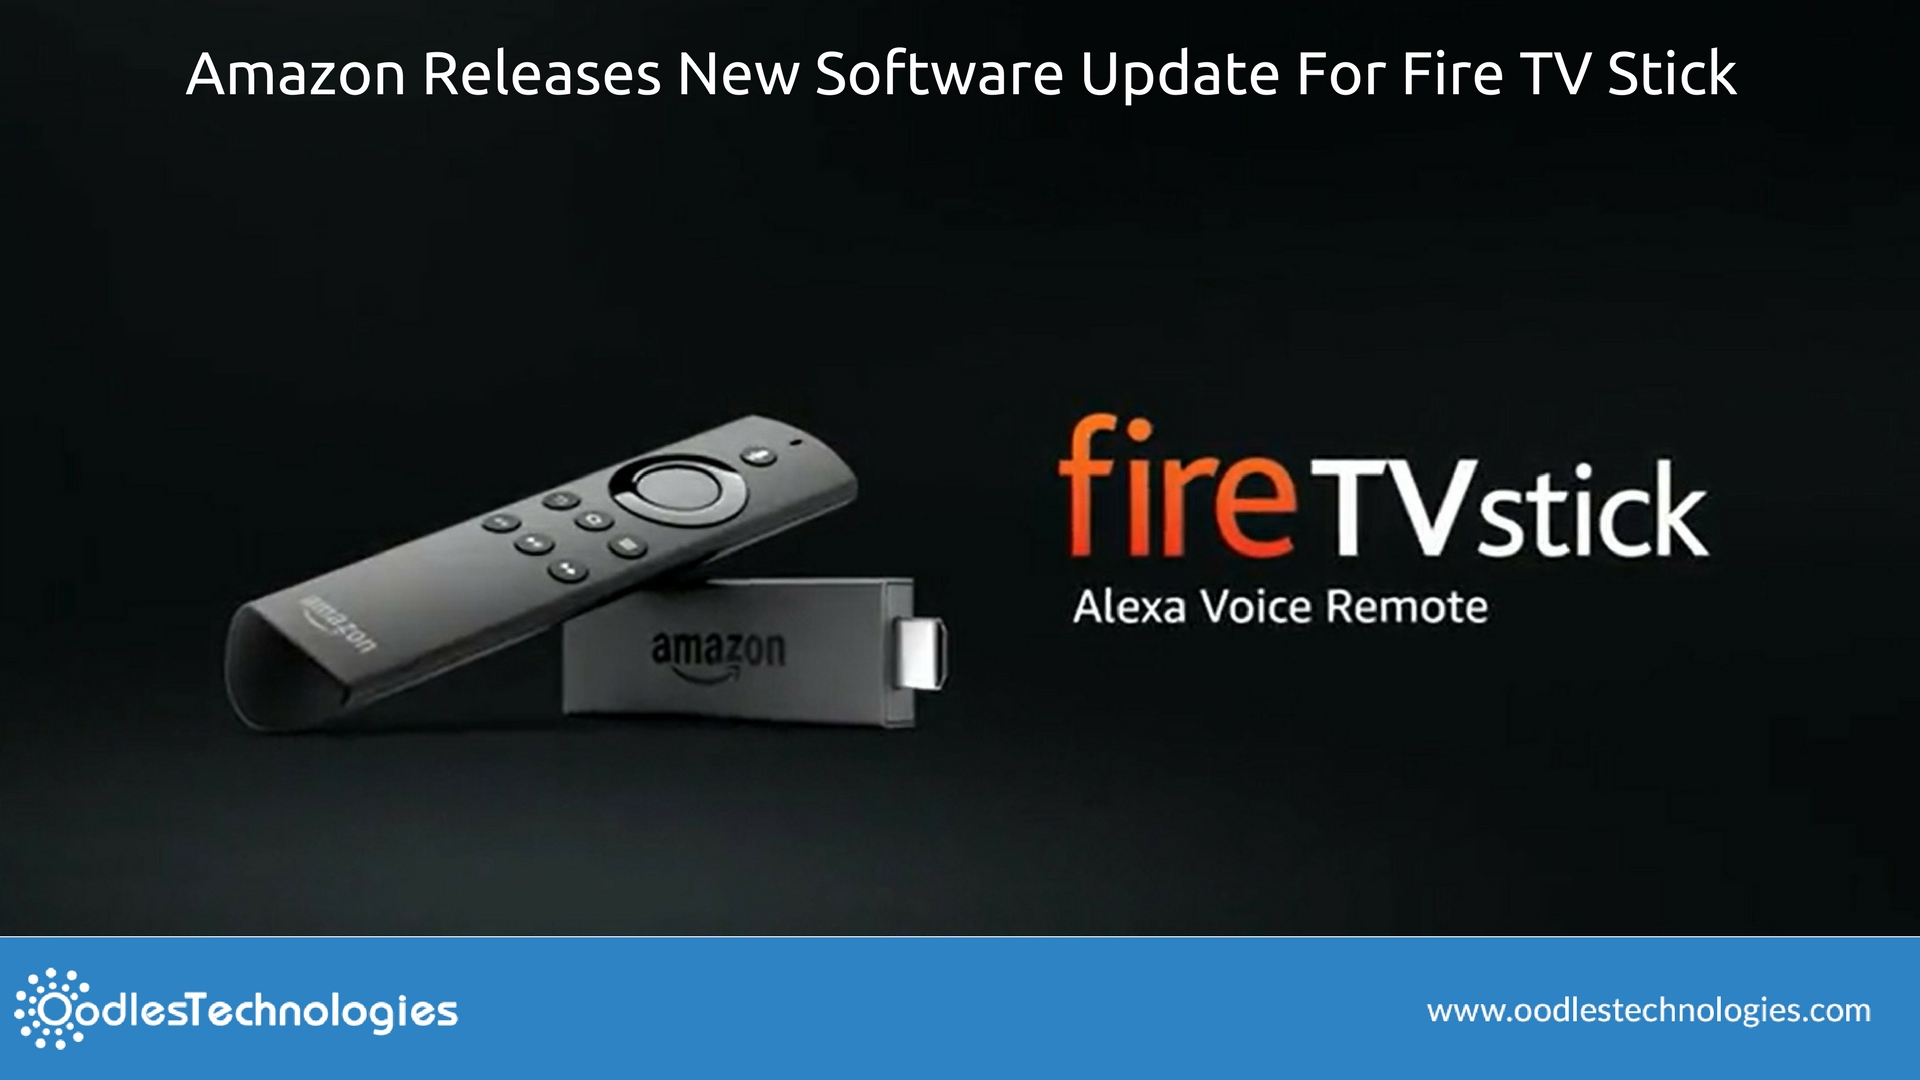 Amazon Releases New Software Update For Fire TV Stick